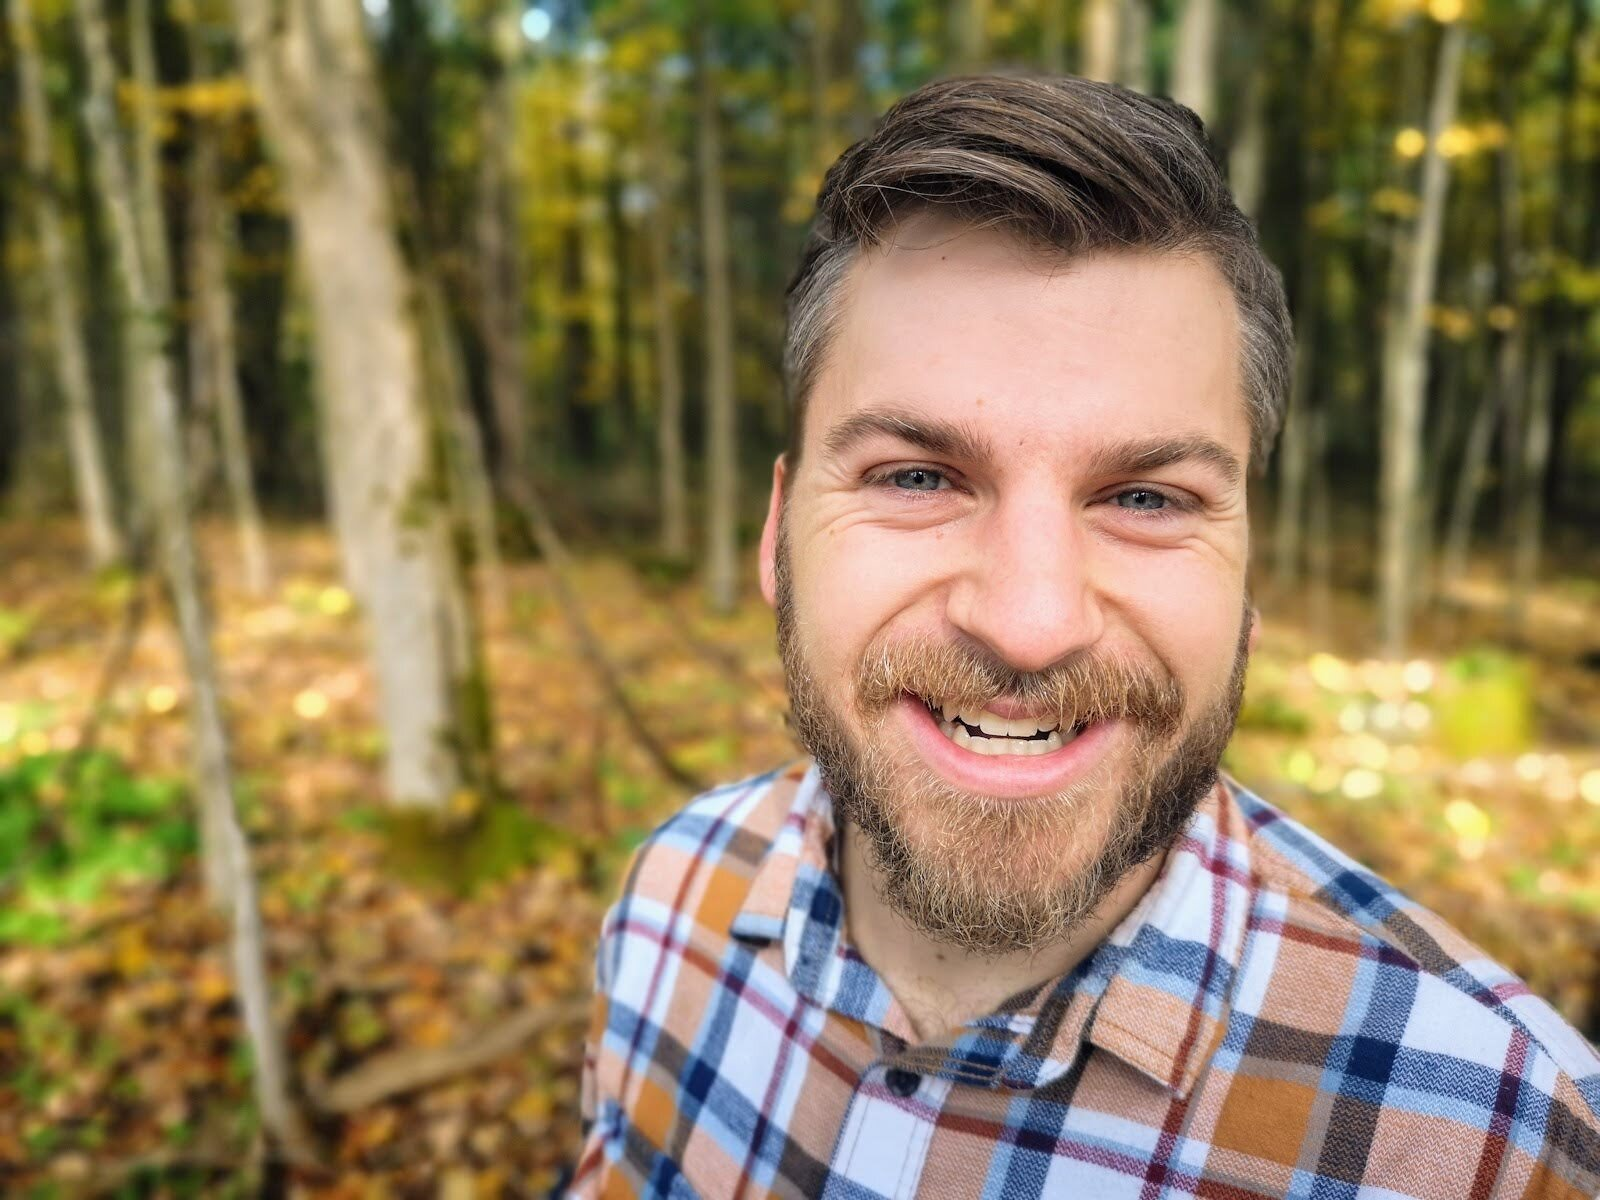 """Matt """"Iscus"""" Honsberger - Go Camp Pro's Podcast Executive Producer, and so much more!"""